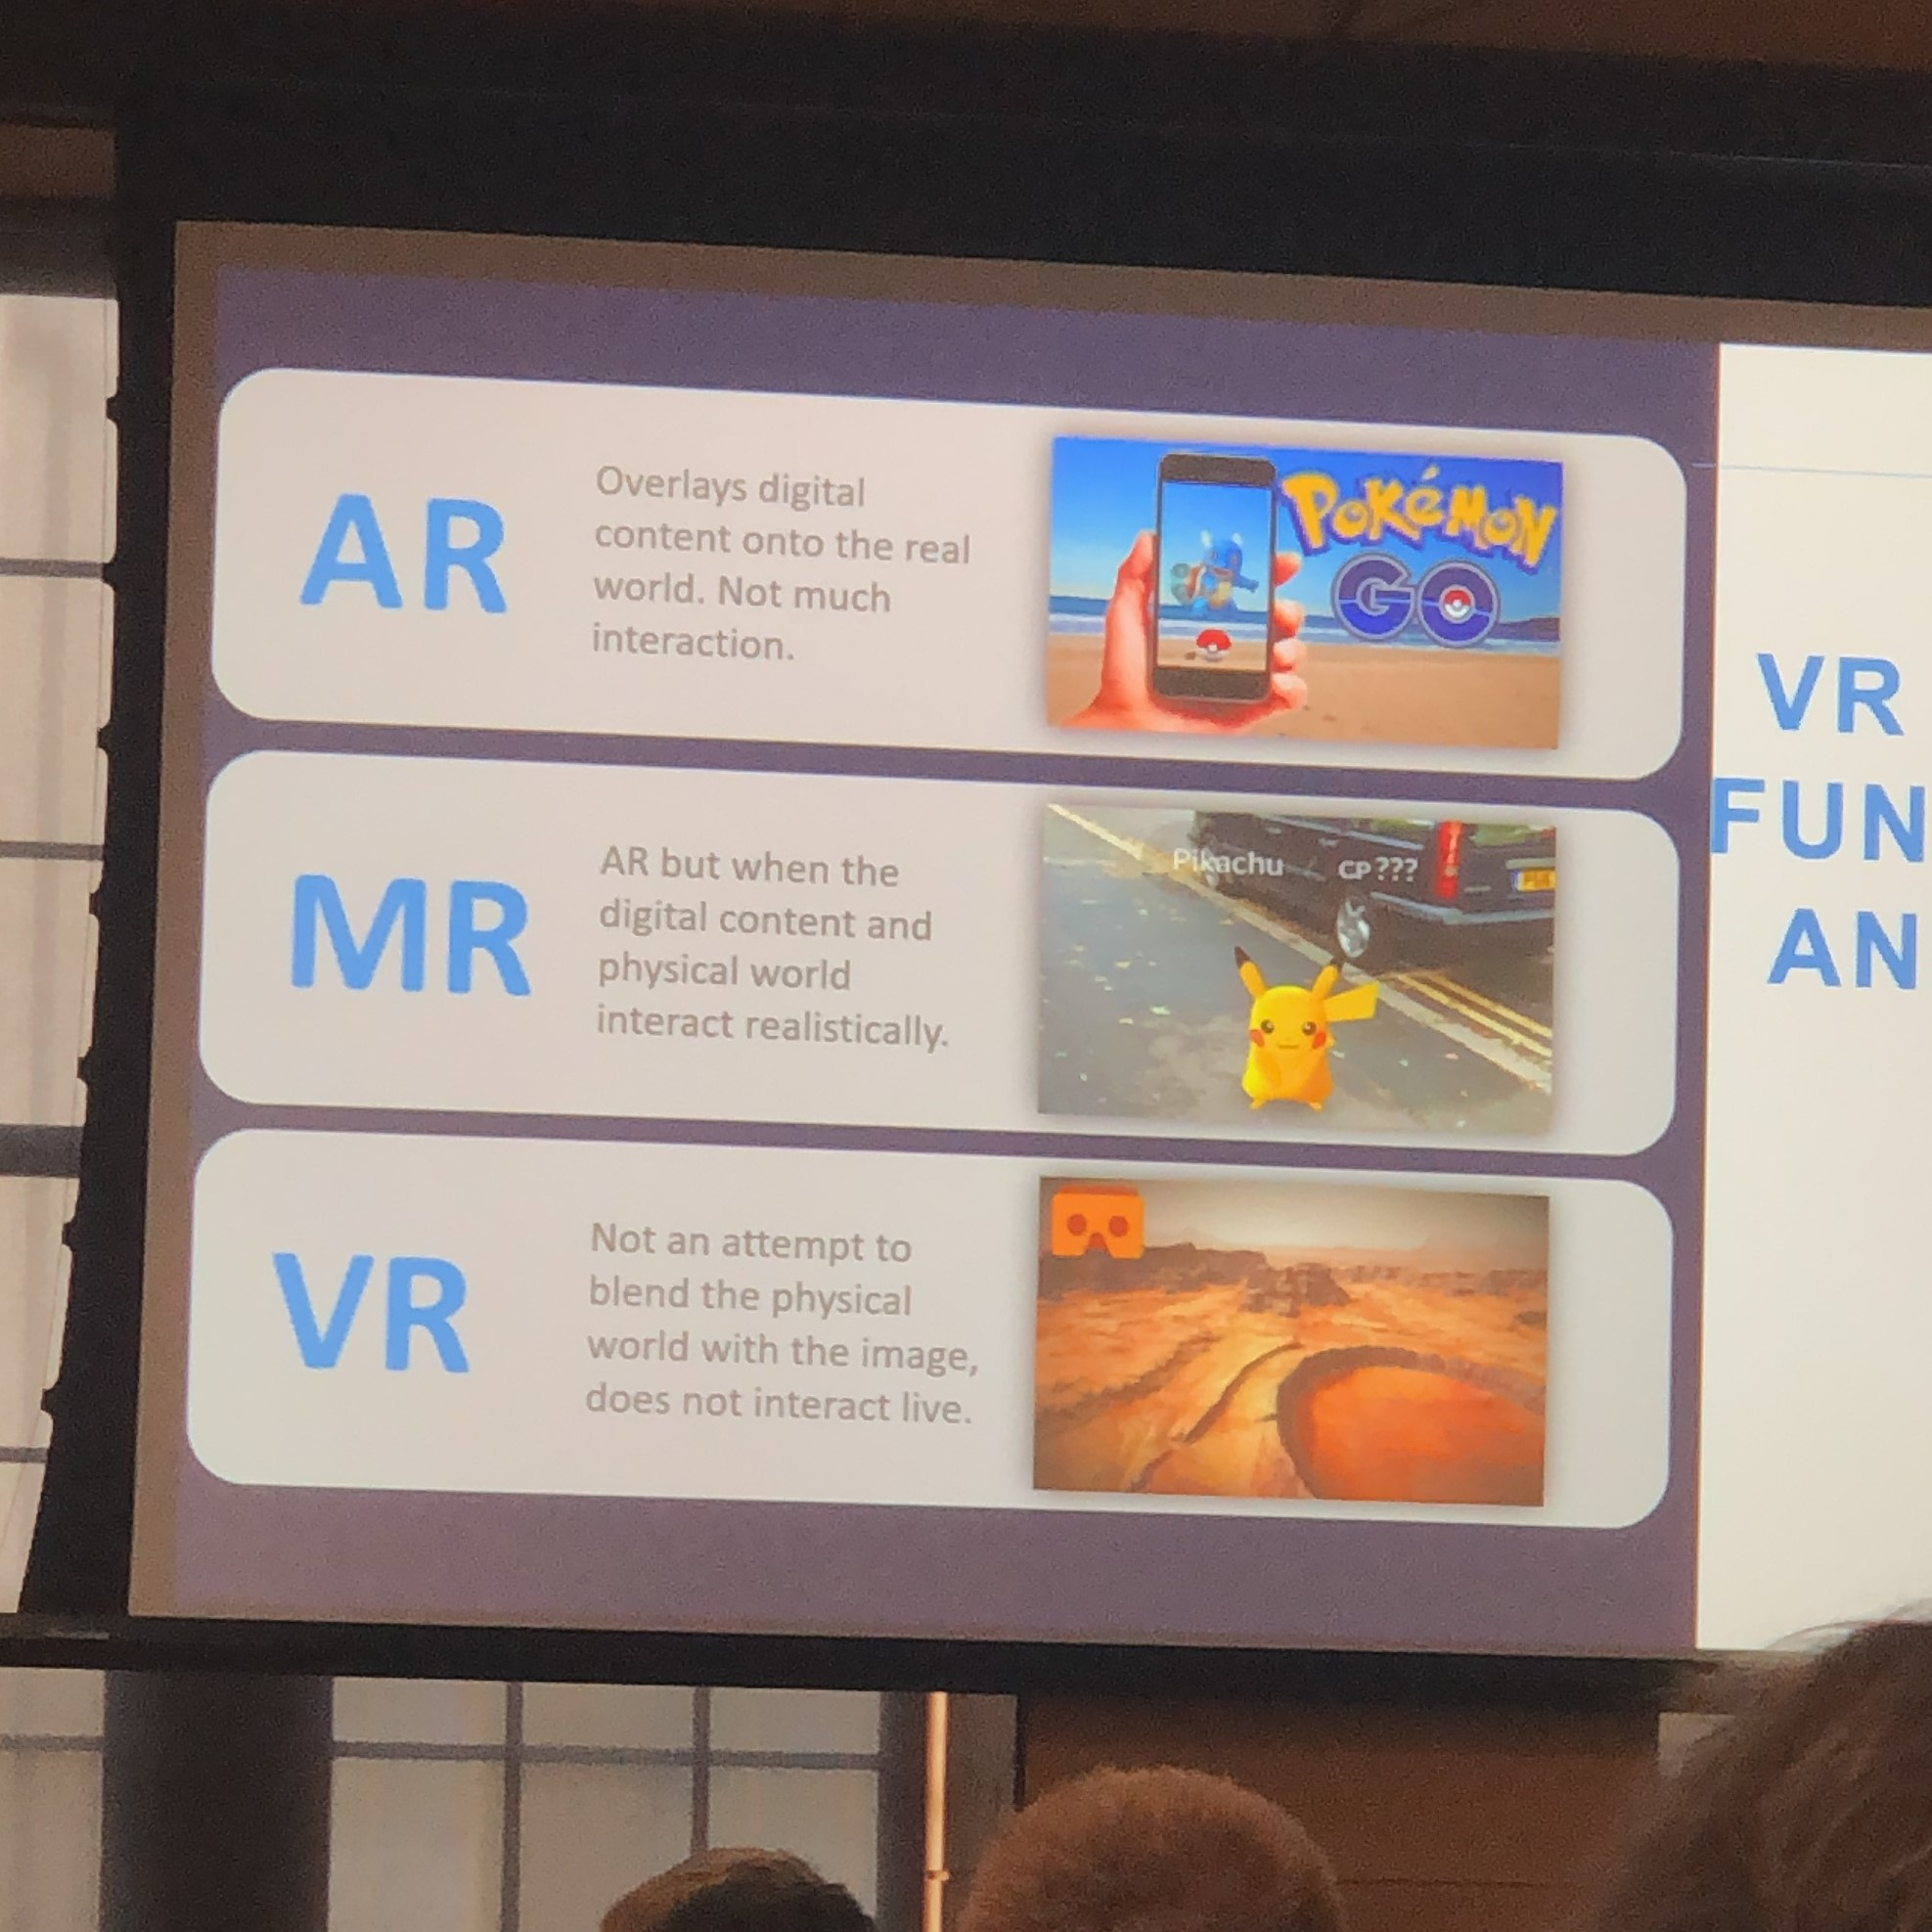 Pokemon GO reference during a presentation on VR by  Yulio .